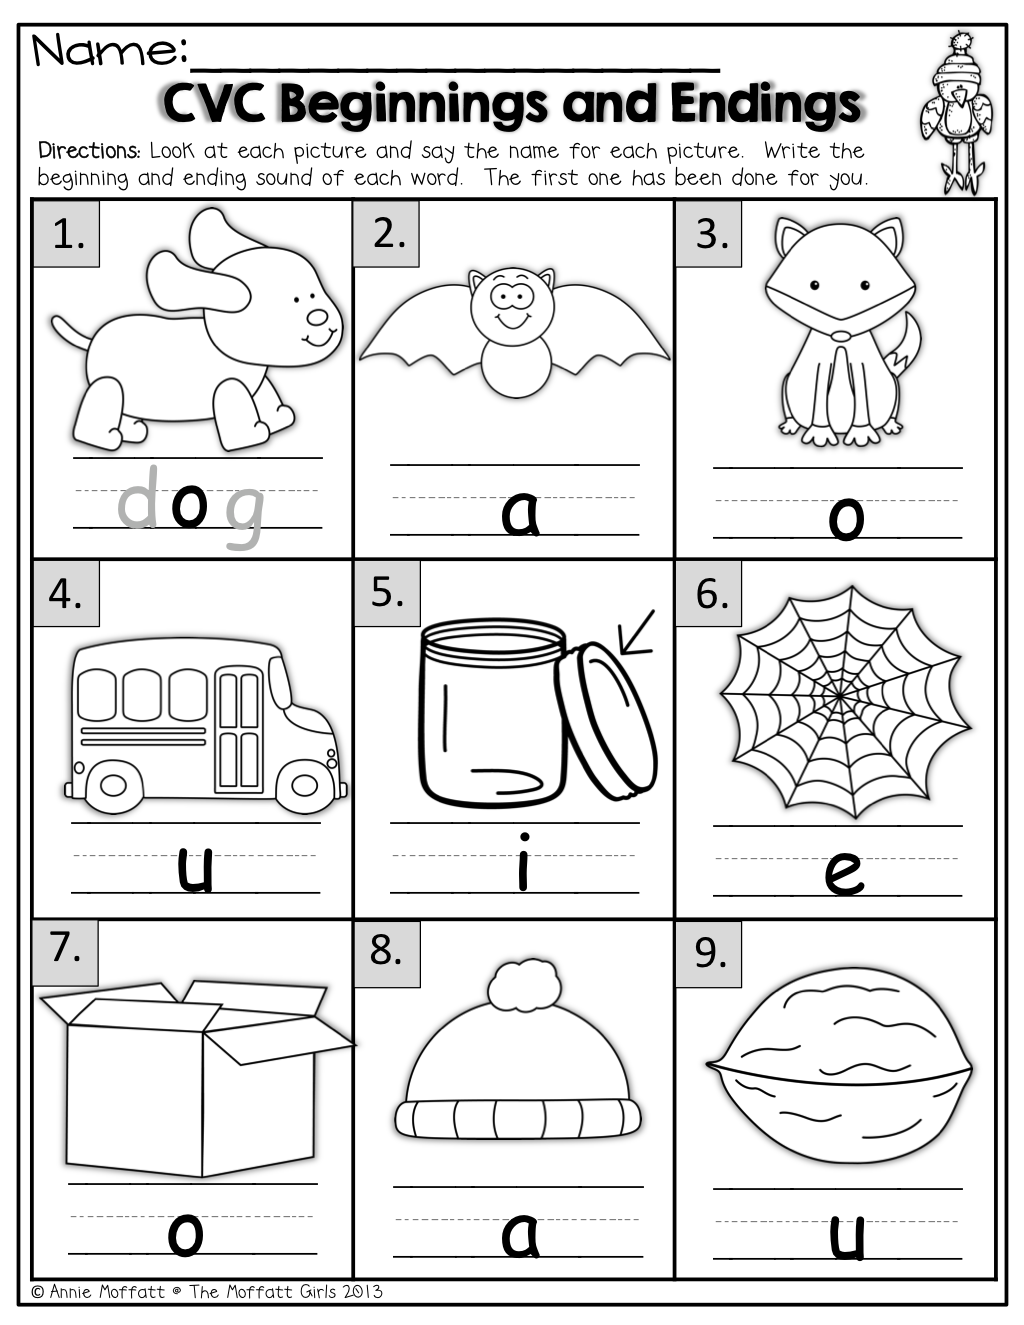 Free Worksheet Initial Sound Worksheets 17 best images about kindergarten stretching out wordscvc words on pinterest sight word practice middle and literacy